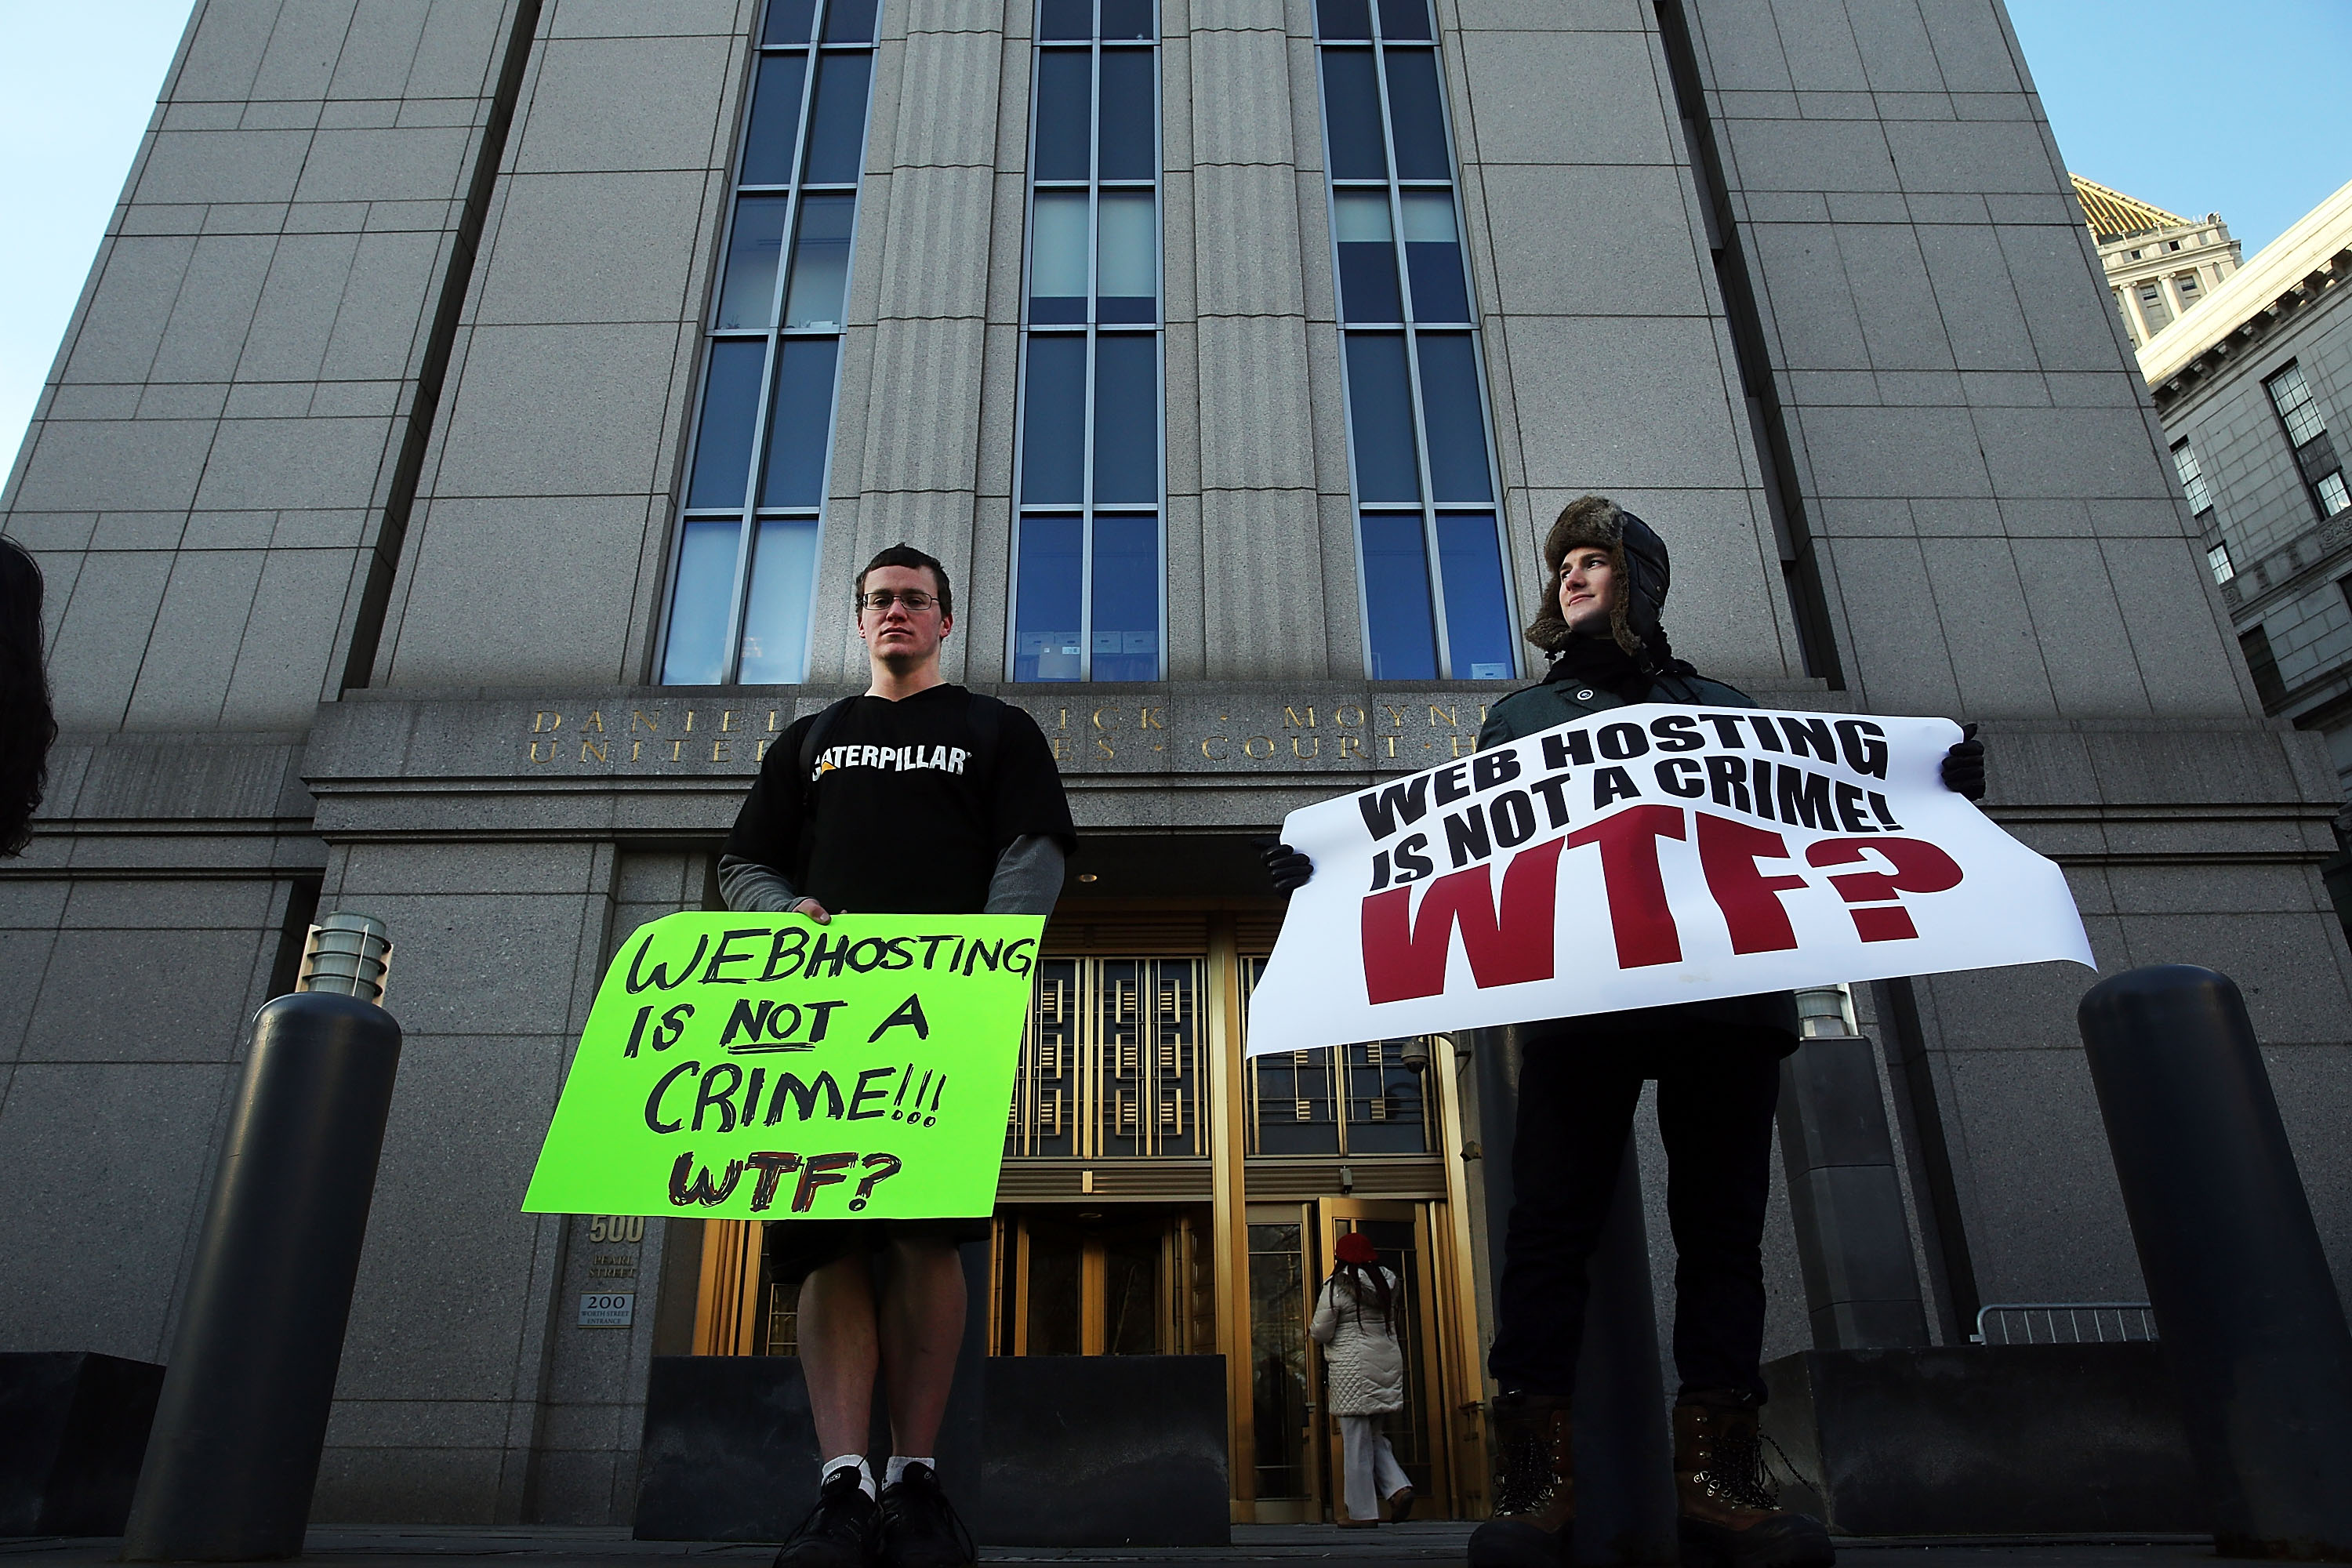 Supporters of Ross Ulbricht, the alleged creator and operator of the Silk Road underground market, stand in front of a Manhattan federal court house on the first day of jury selection for his trial on January 13, 2015 in New York City.